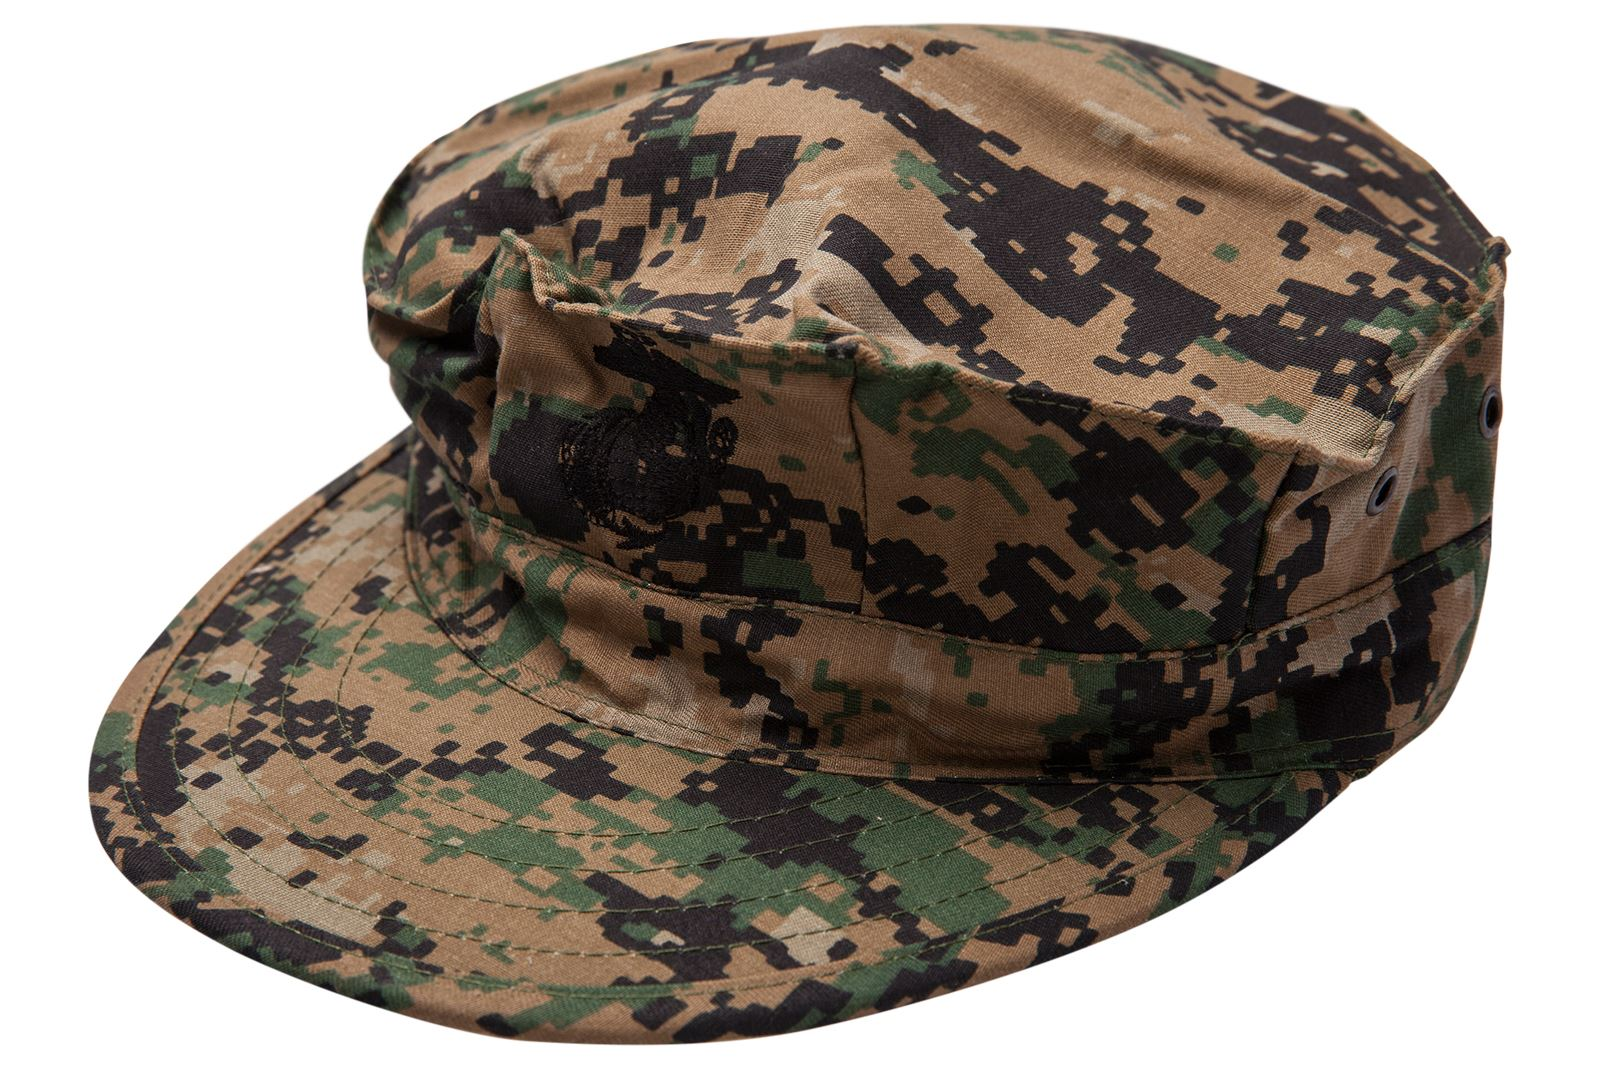 Unisex camouflage army military cap hunting fishing camo for Camo fishing hat